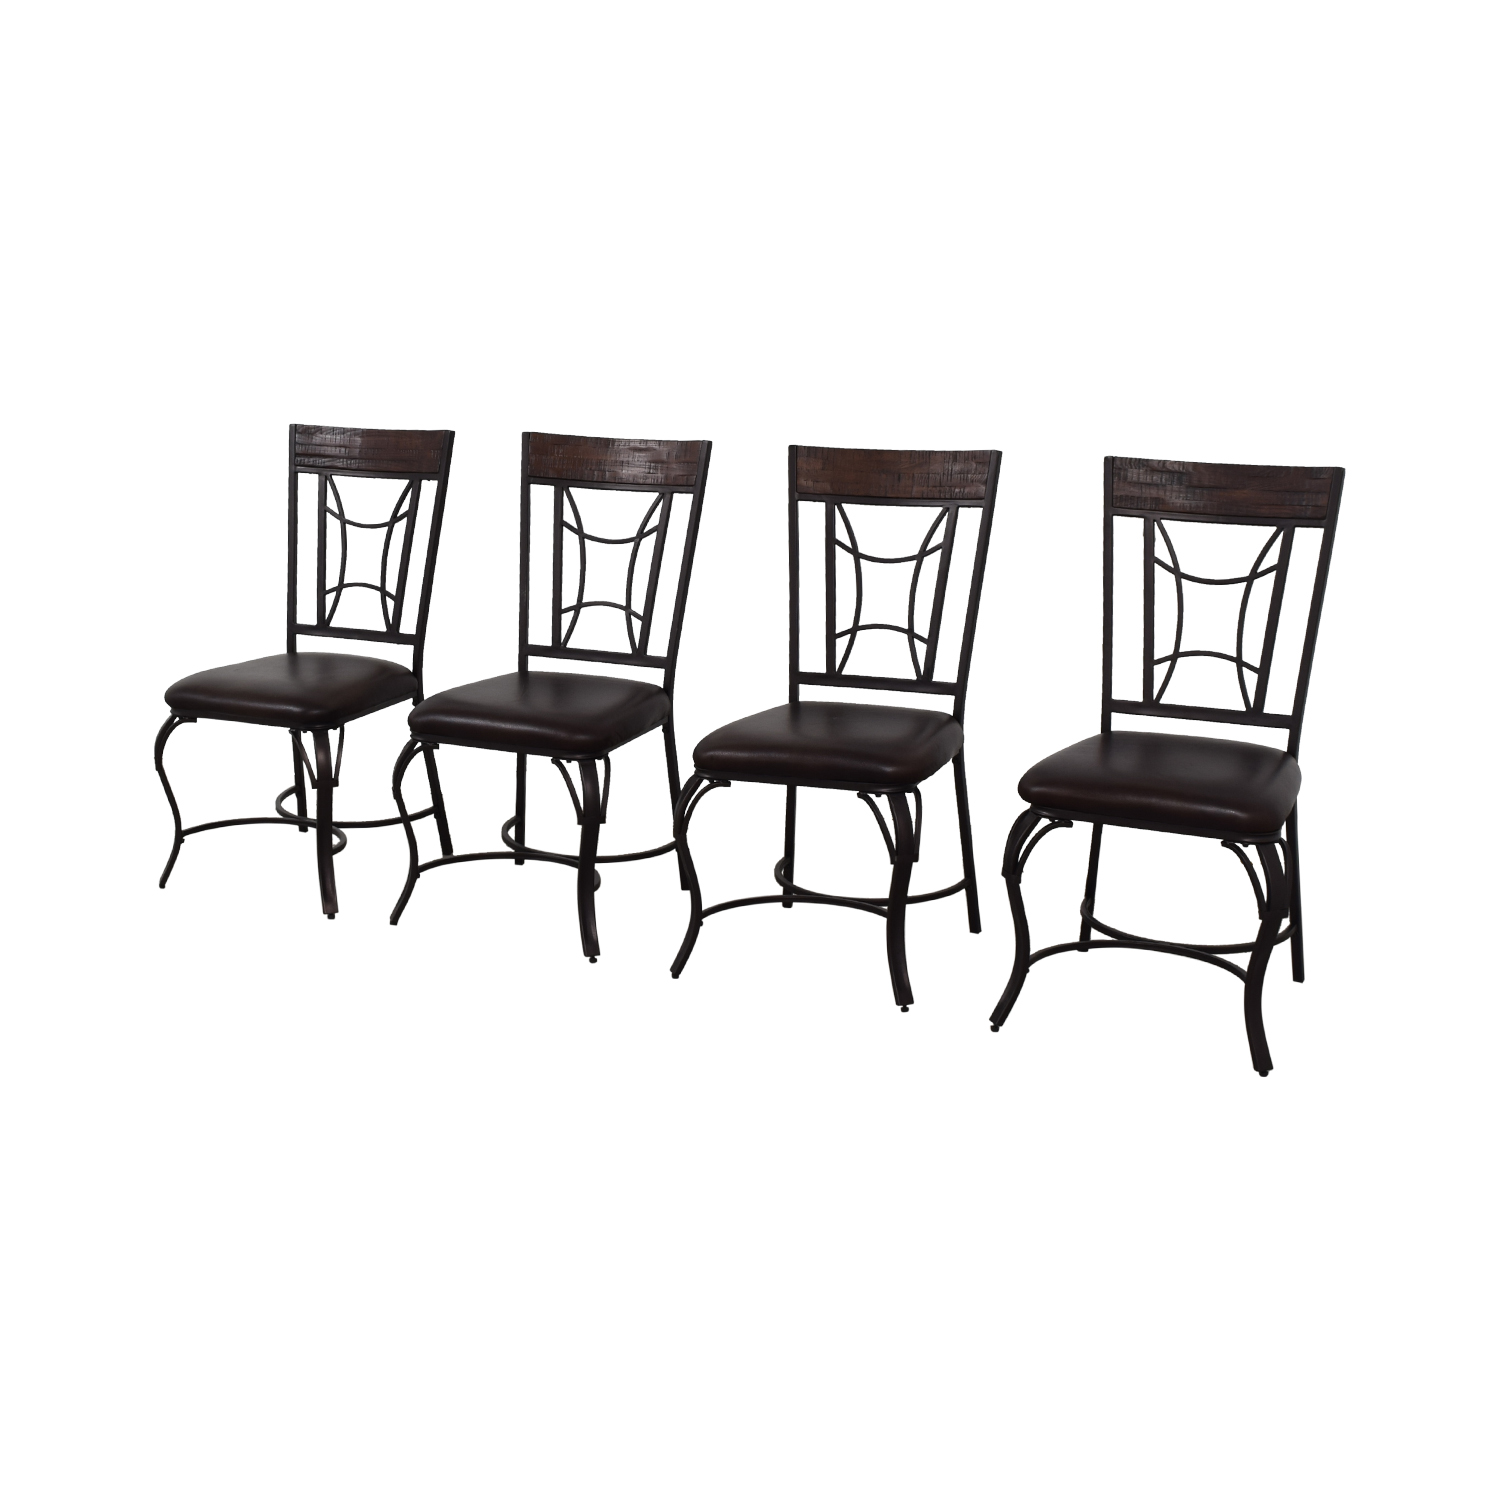 Hillsdale Furniture Hillsdale Furniture Dining Chairs